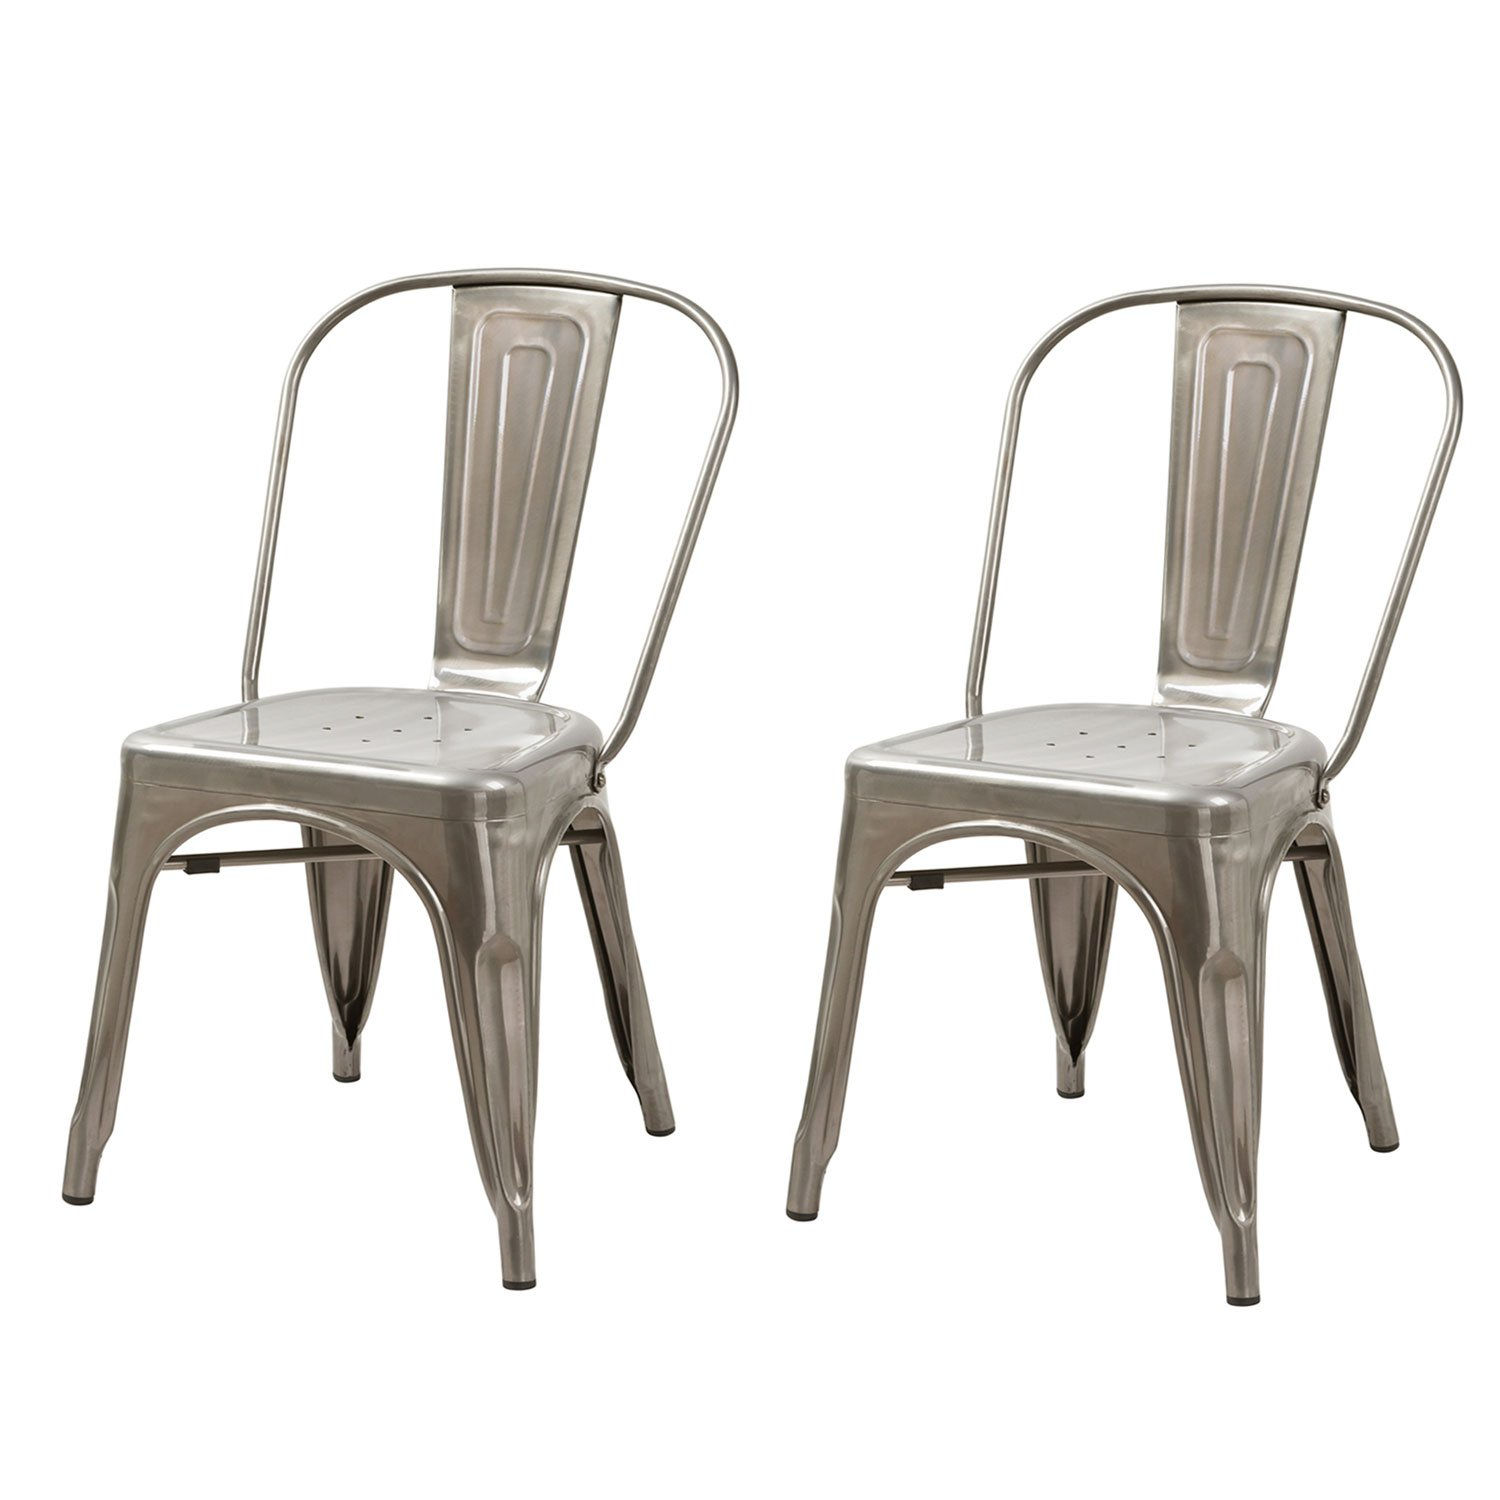 Adeco metal stackable industrial chic dining bistro cafe side chairs - Amazon Com Adeco Metal Stackable Industrial Chic Dining Bistro Cafe Side Chairs Silver Gun Metal Set Of 2 Chairs